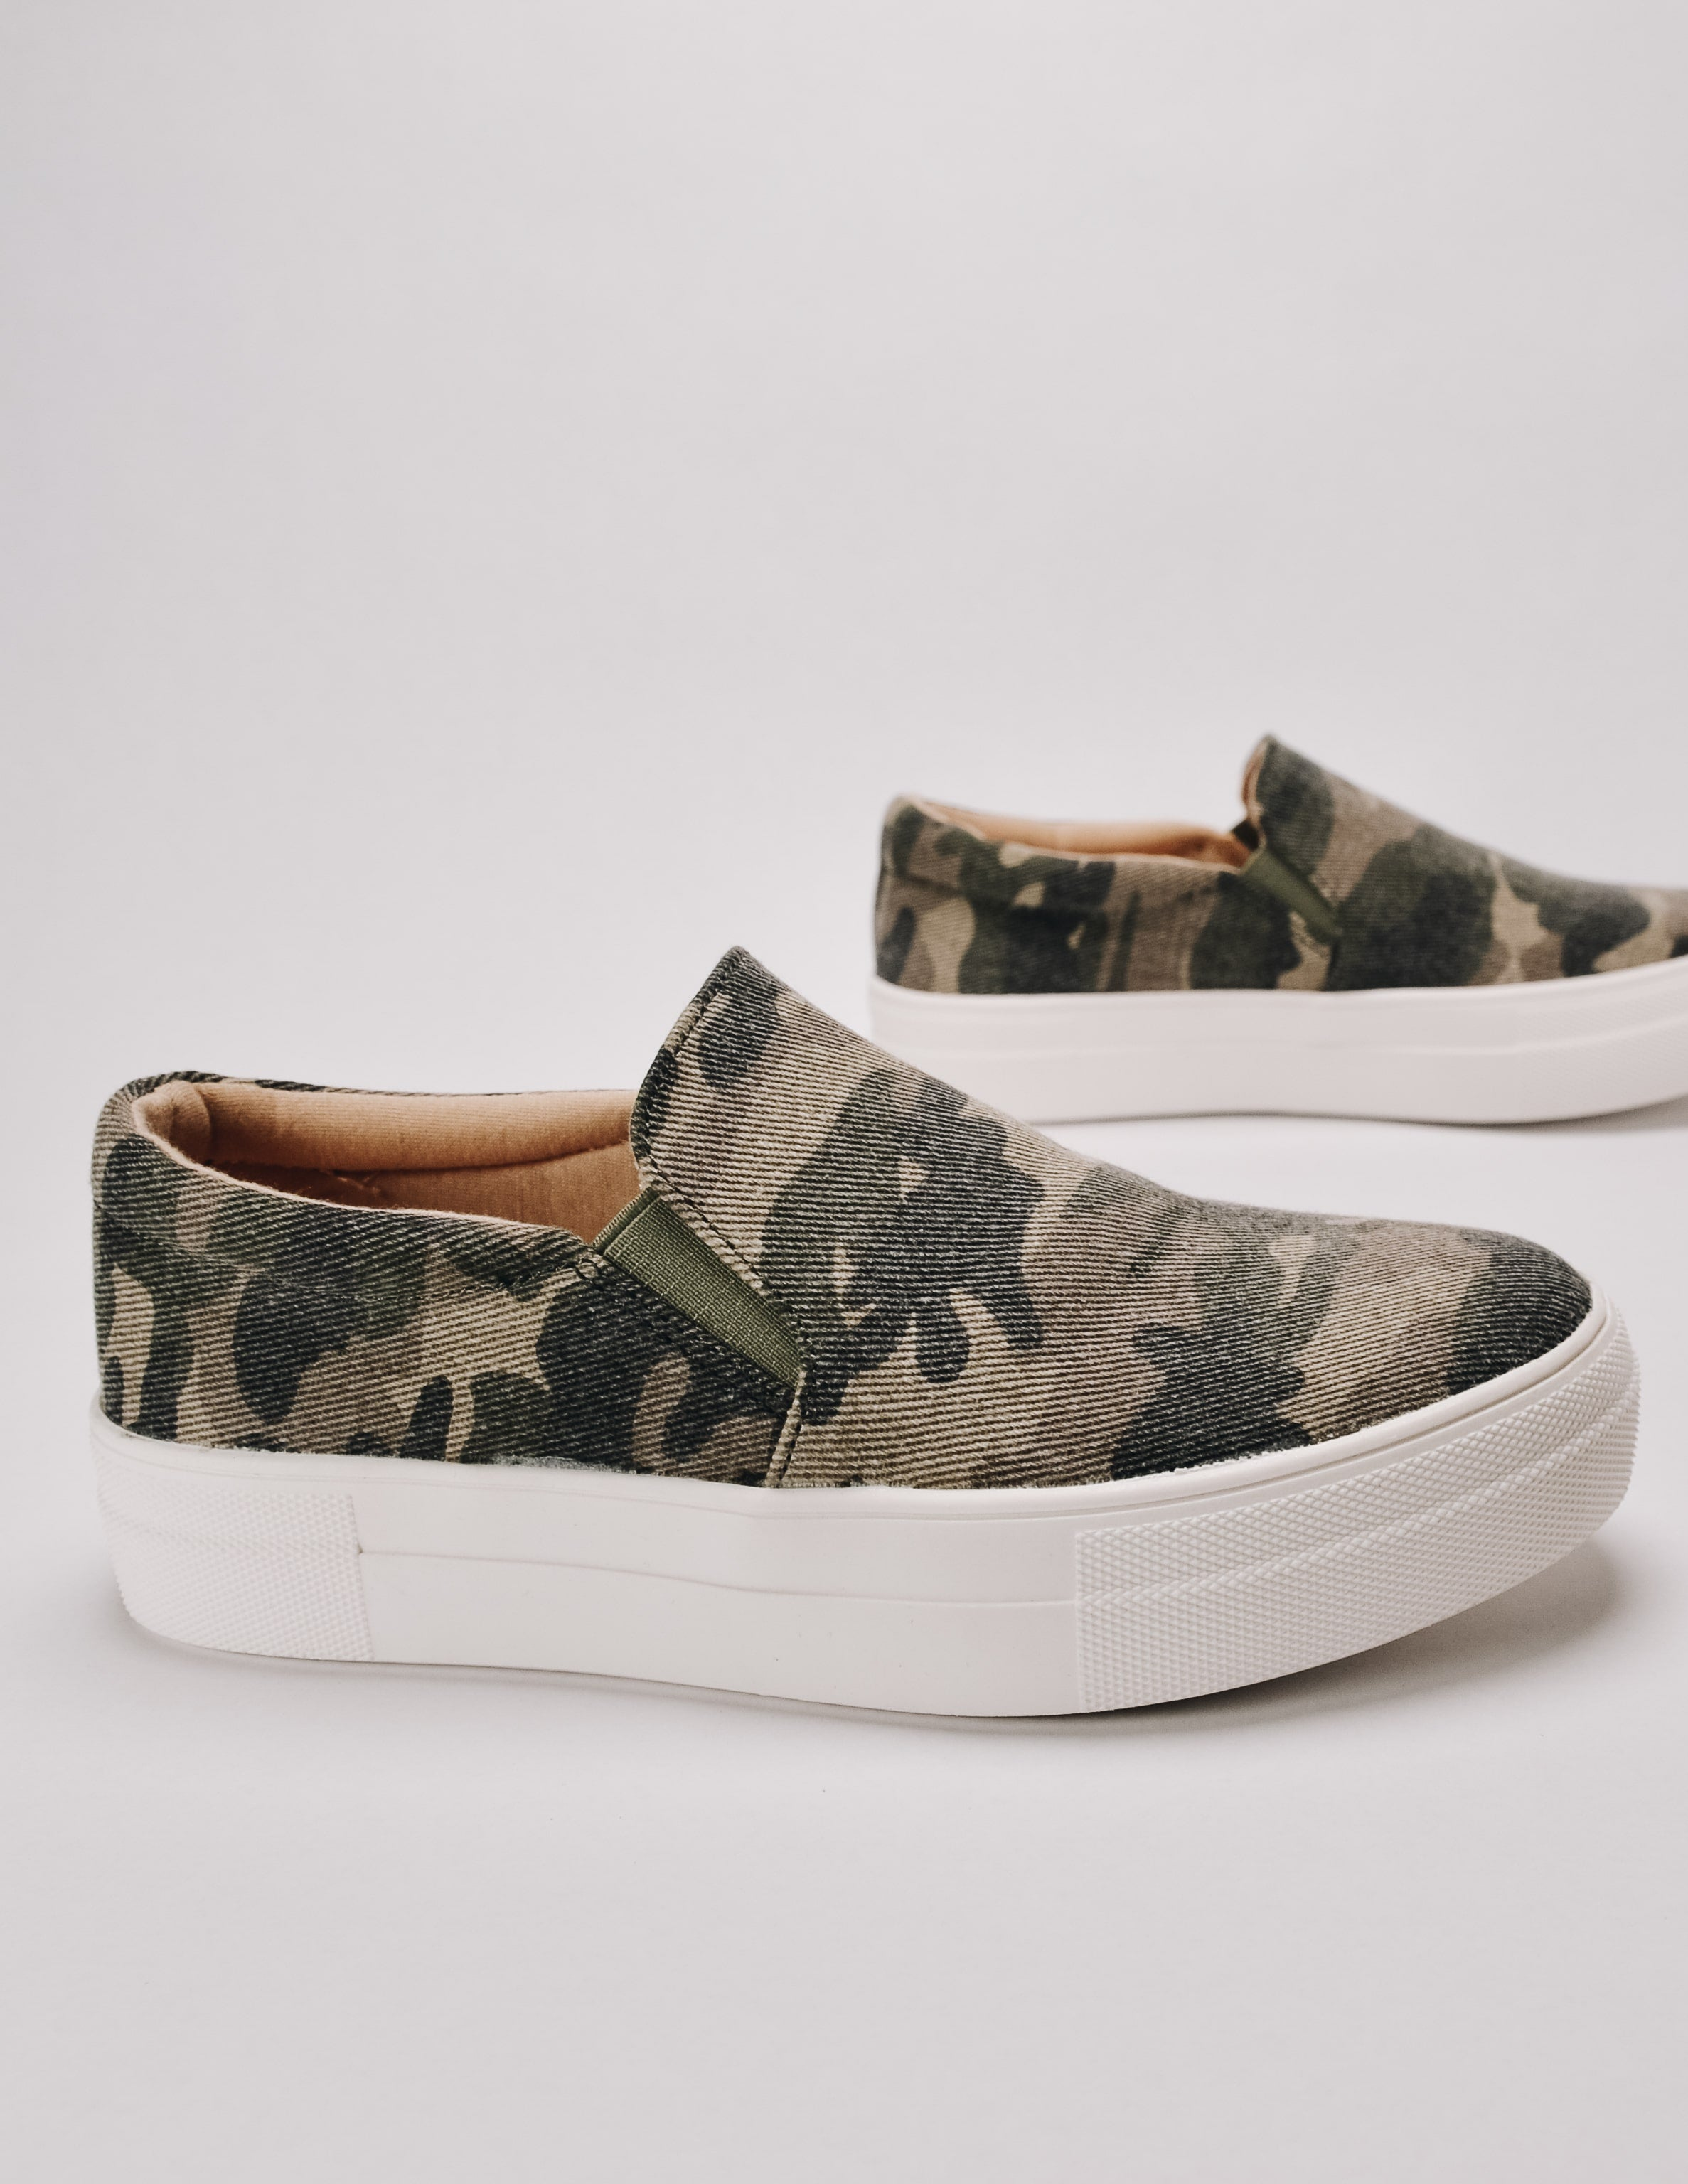 Camo slip on sneaker with white thick platform sole